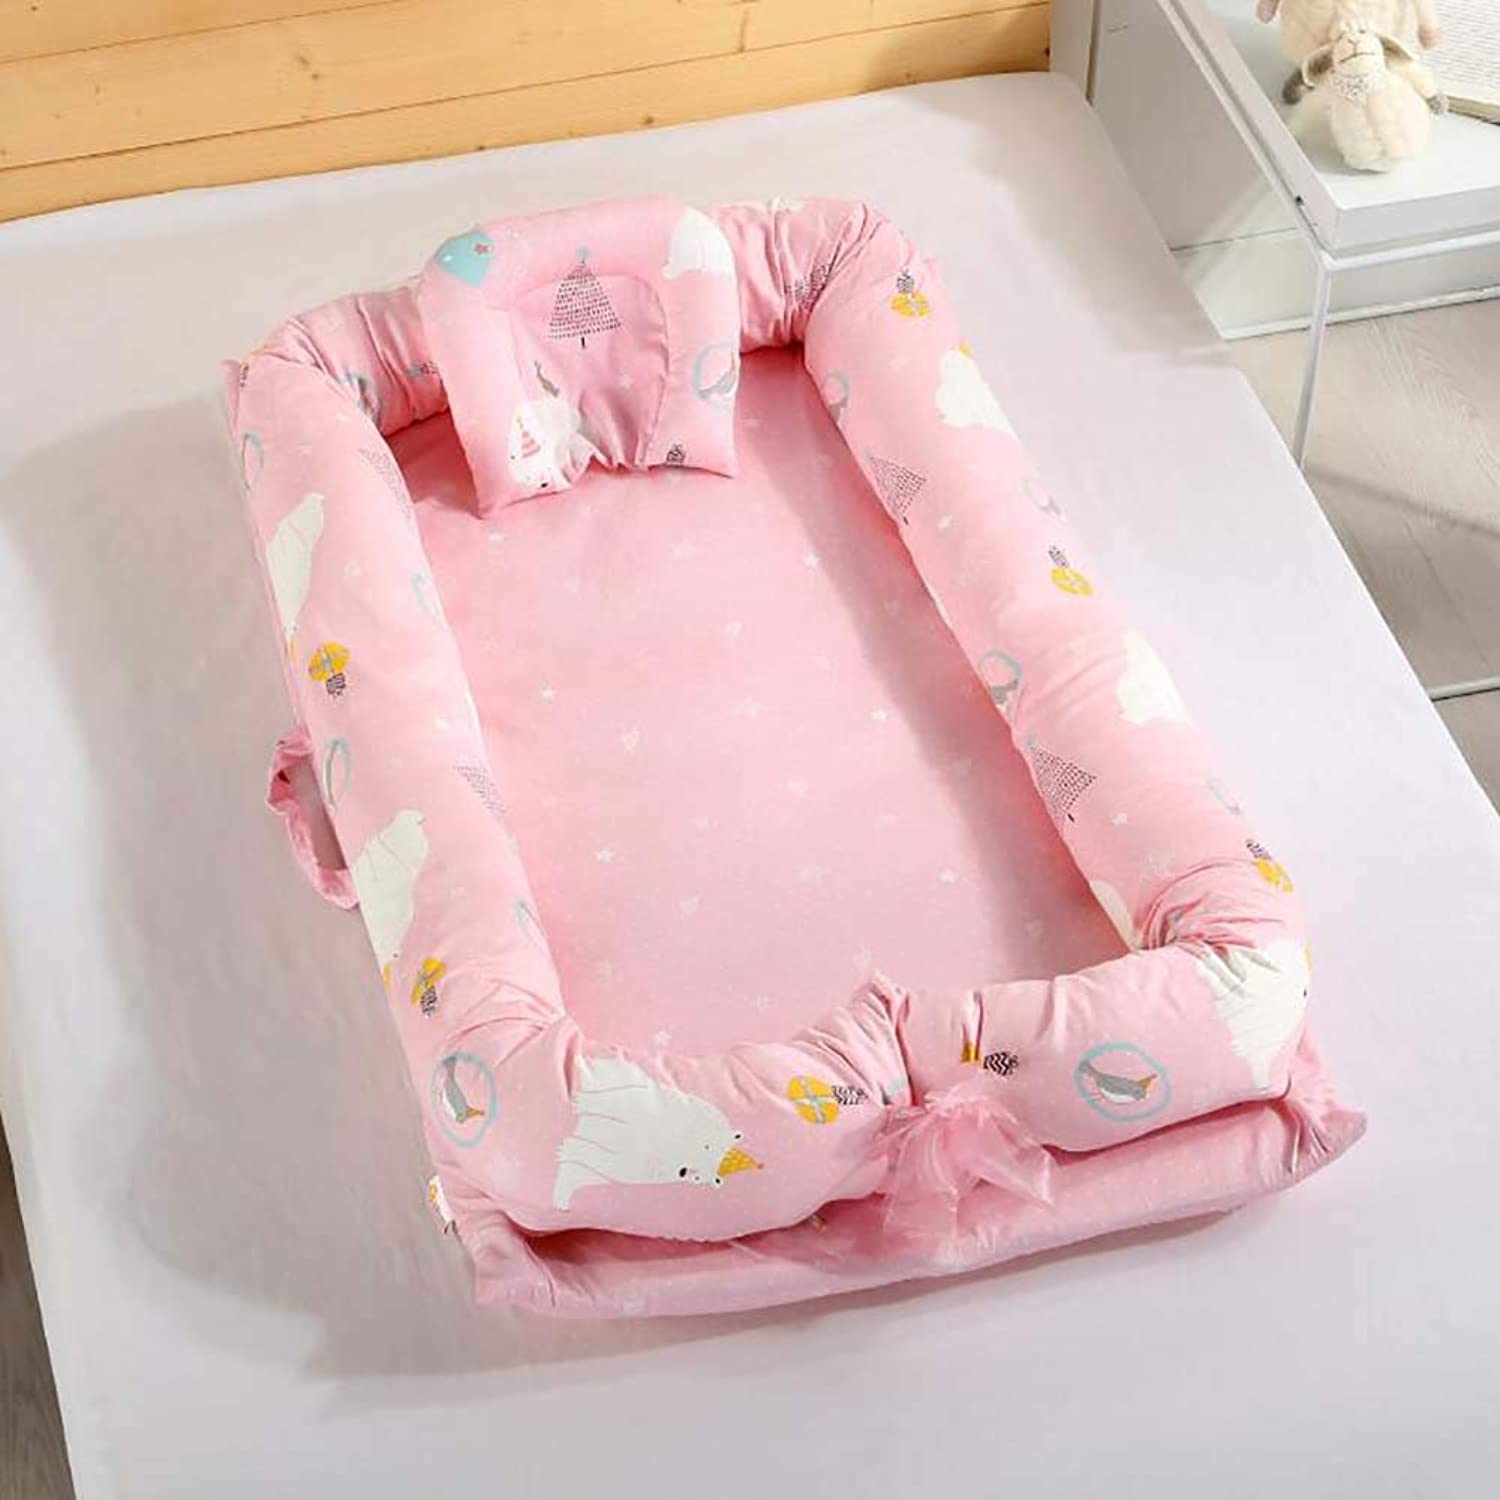 Crib Foldable Newborn Portable Bed Bionic Bed Removable and Washable for 0-2 Year Old Baby,D